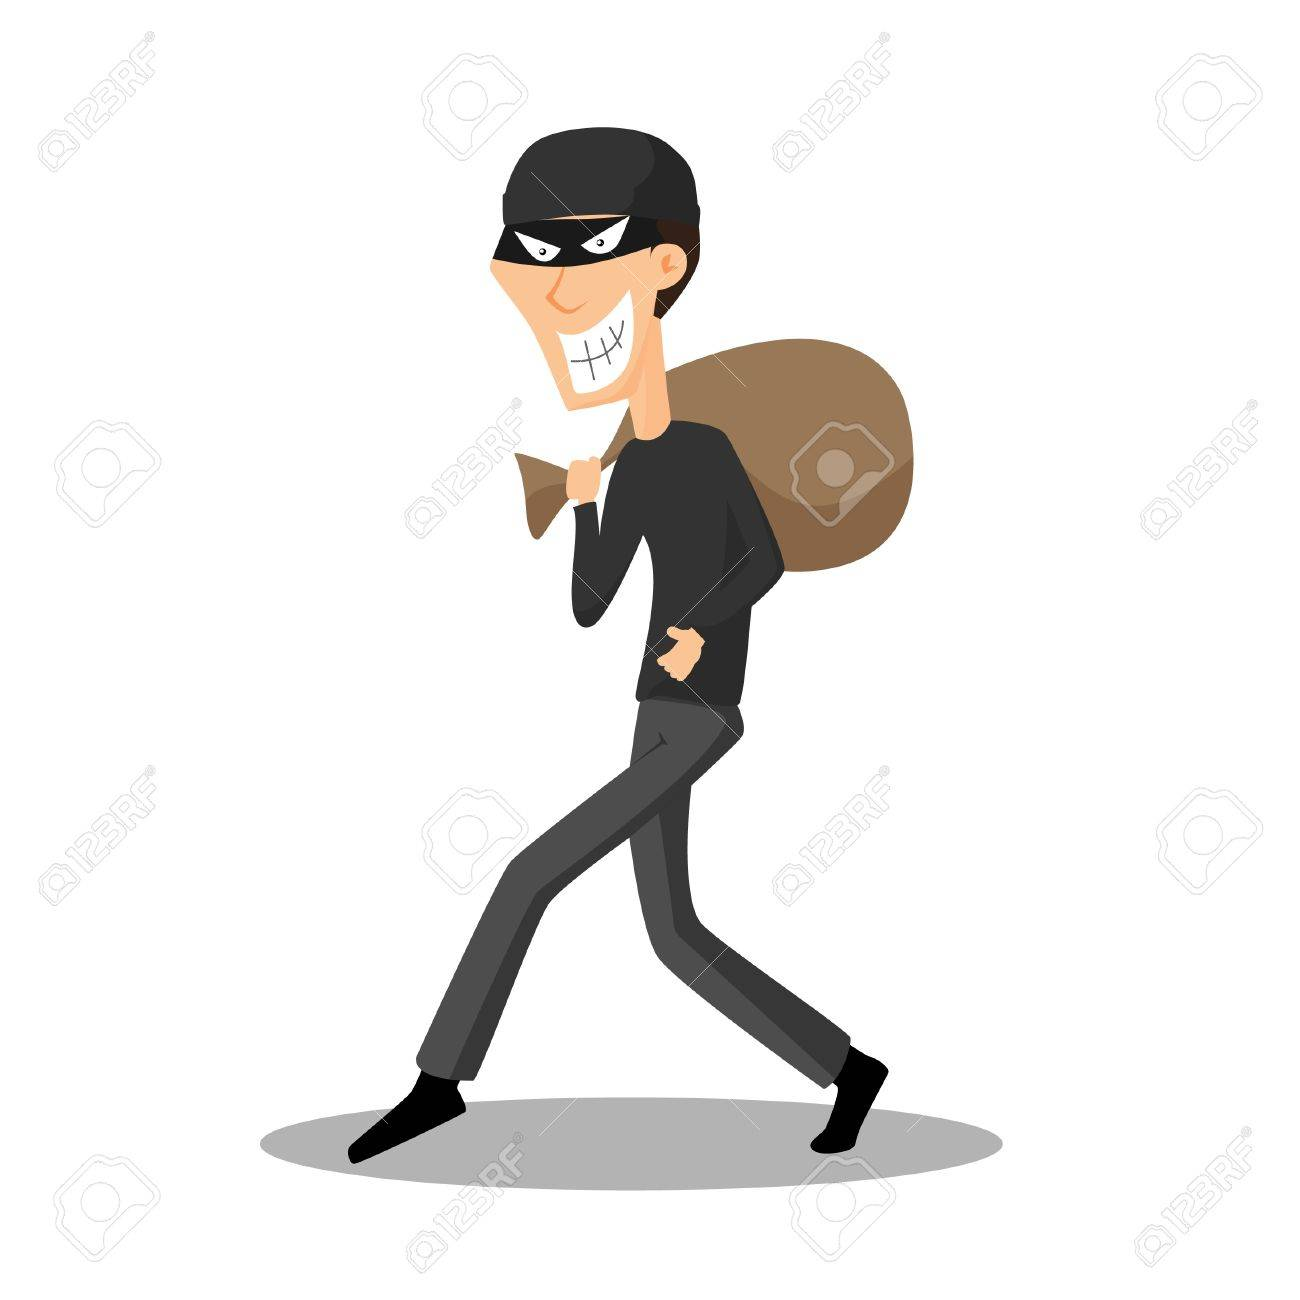 Thief Stock Vector - 16641754